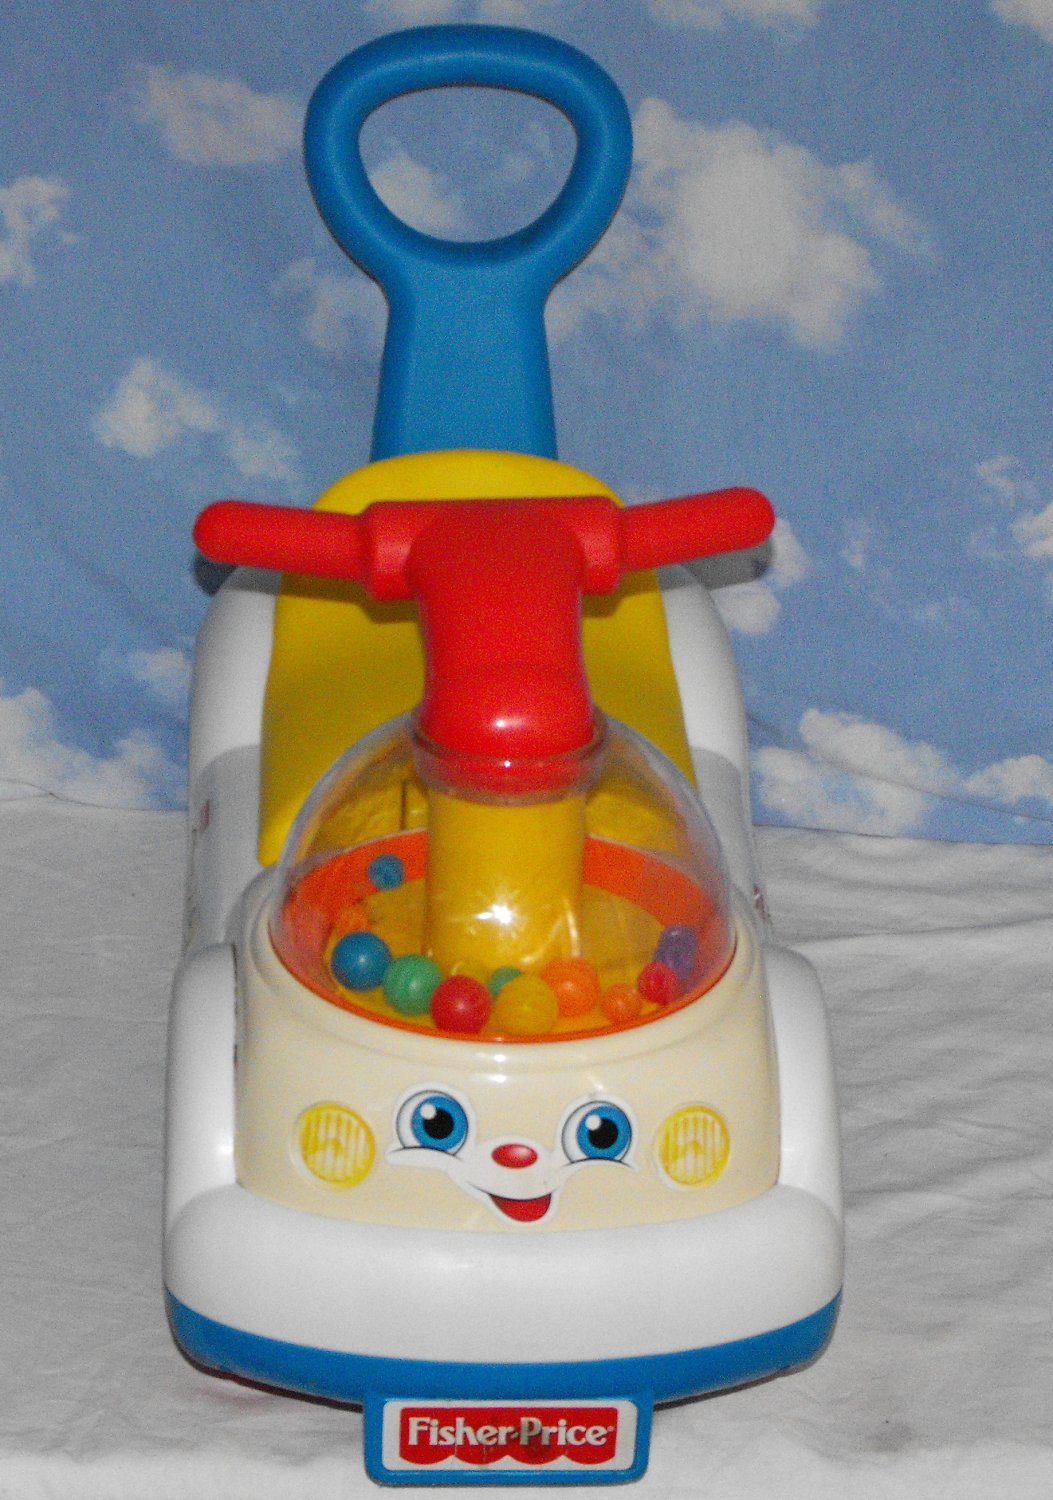 *SOLD~Awaiting Feedback~Fisher-Price Corn Popper Ride-On Walker Push Toy